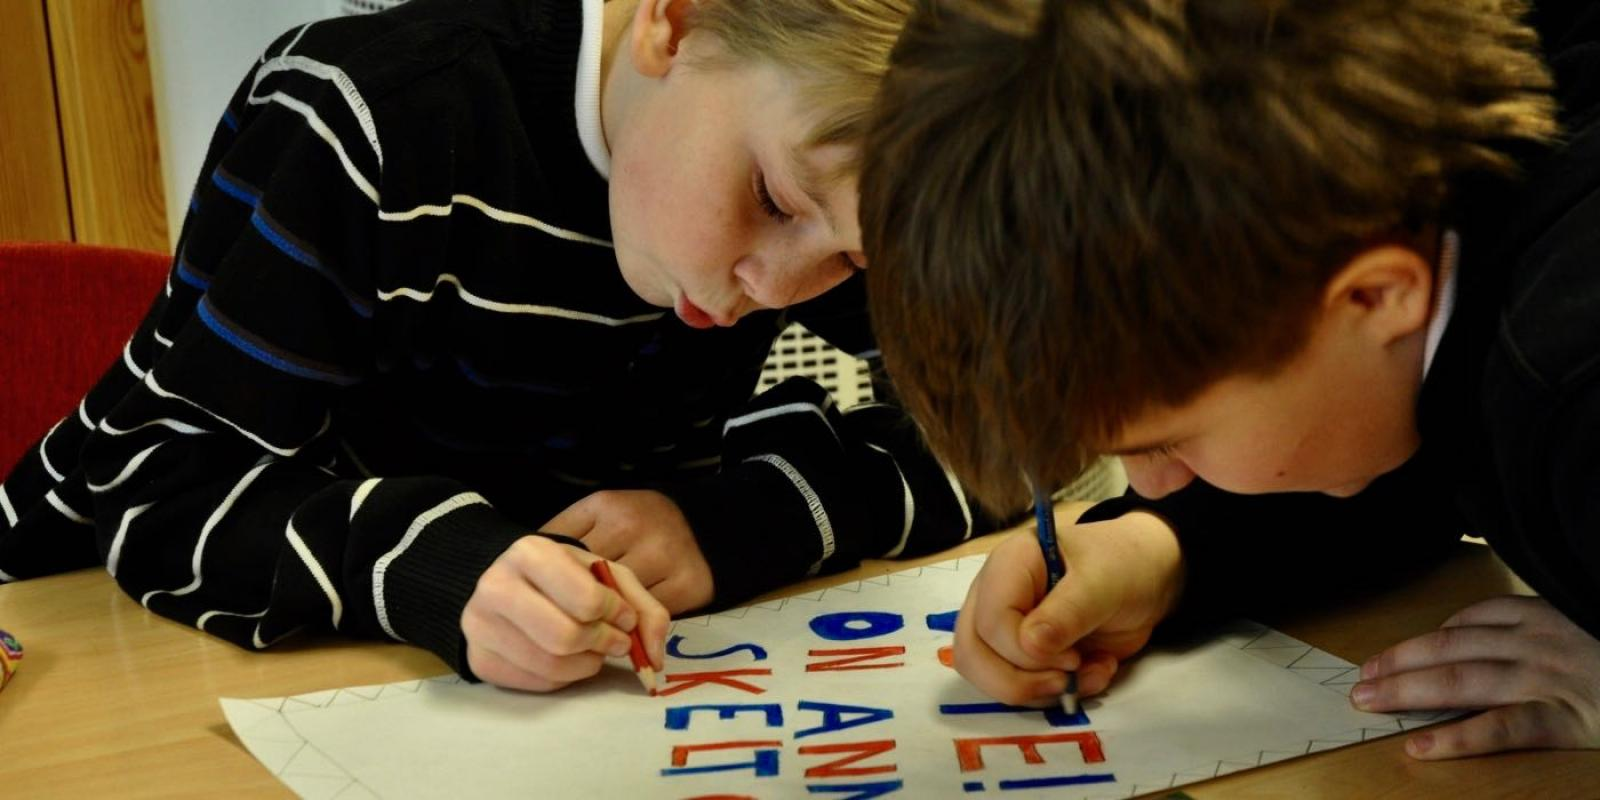 Two boys creating an election poster